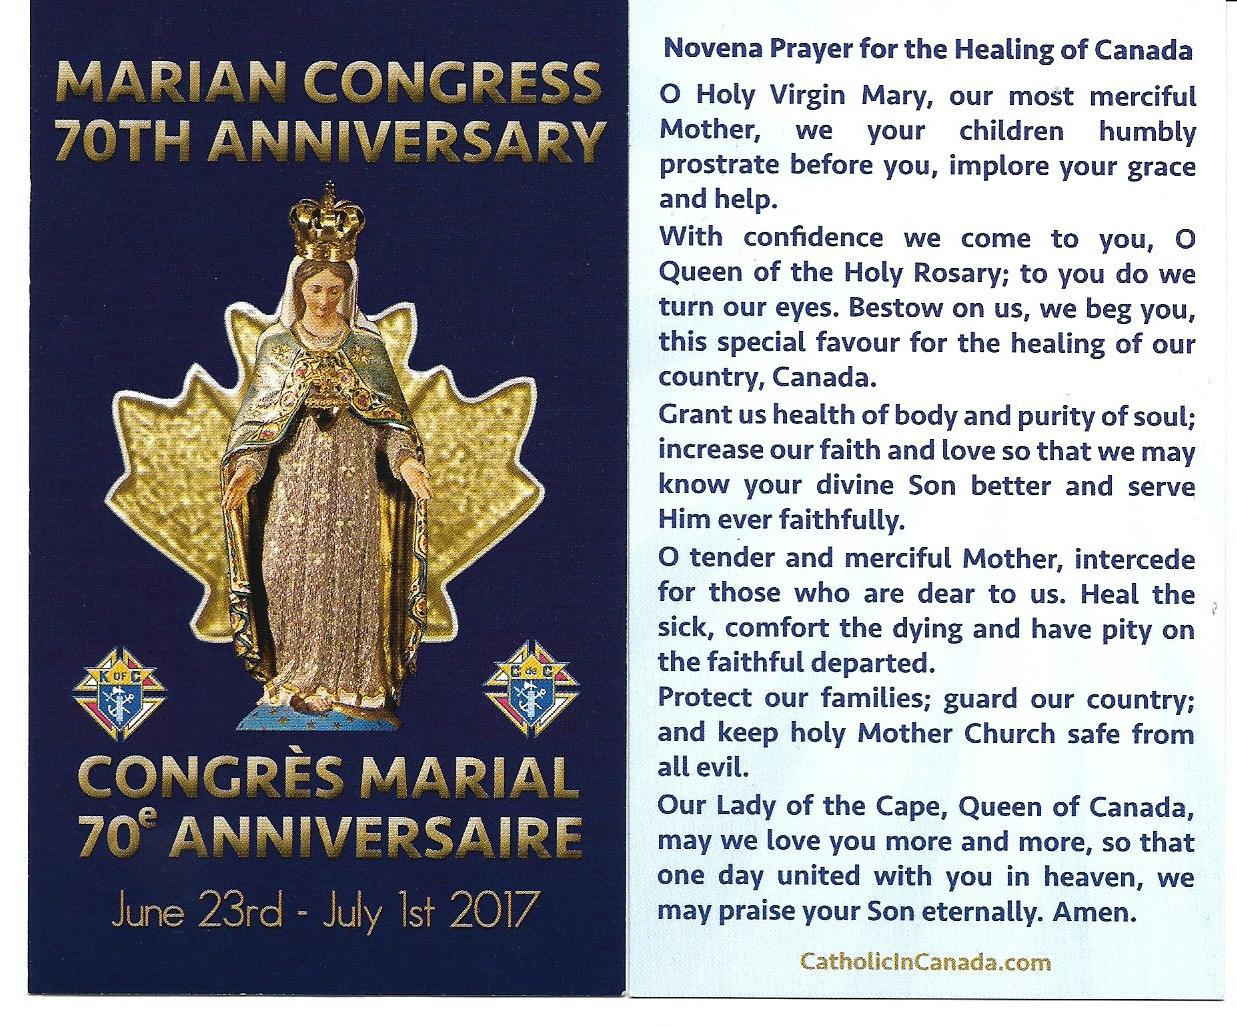 Maureen's Thoughts: Novena Prayer for the Healing of Canada